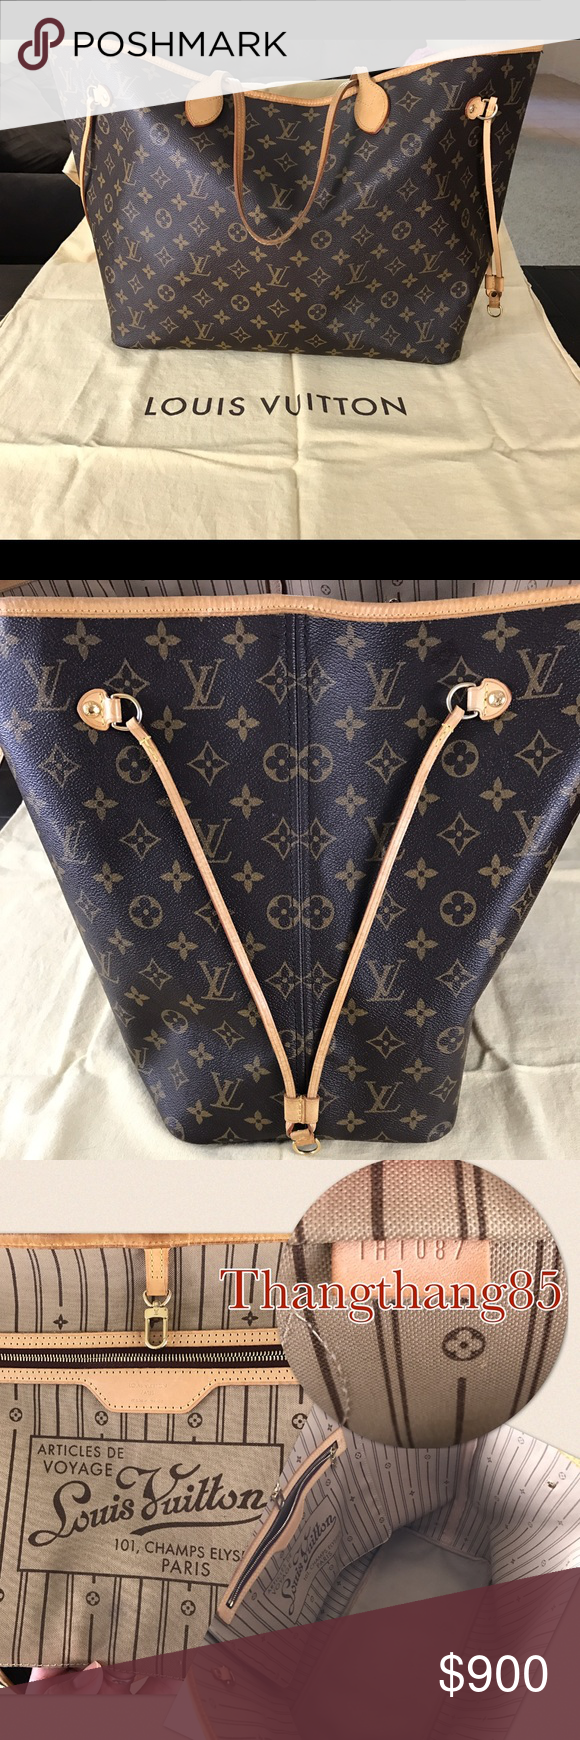 AUTHENTIC Louis Vuitton neverfull GM AUTHENTIC Louis Vuitton neverfull GM. Gently used, in great condition. This bag will come with its original dust bag. Serious inquires only. NO TRADE, thank you. Louis Vuitton Bags Totes